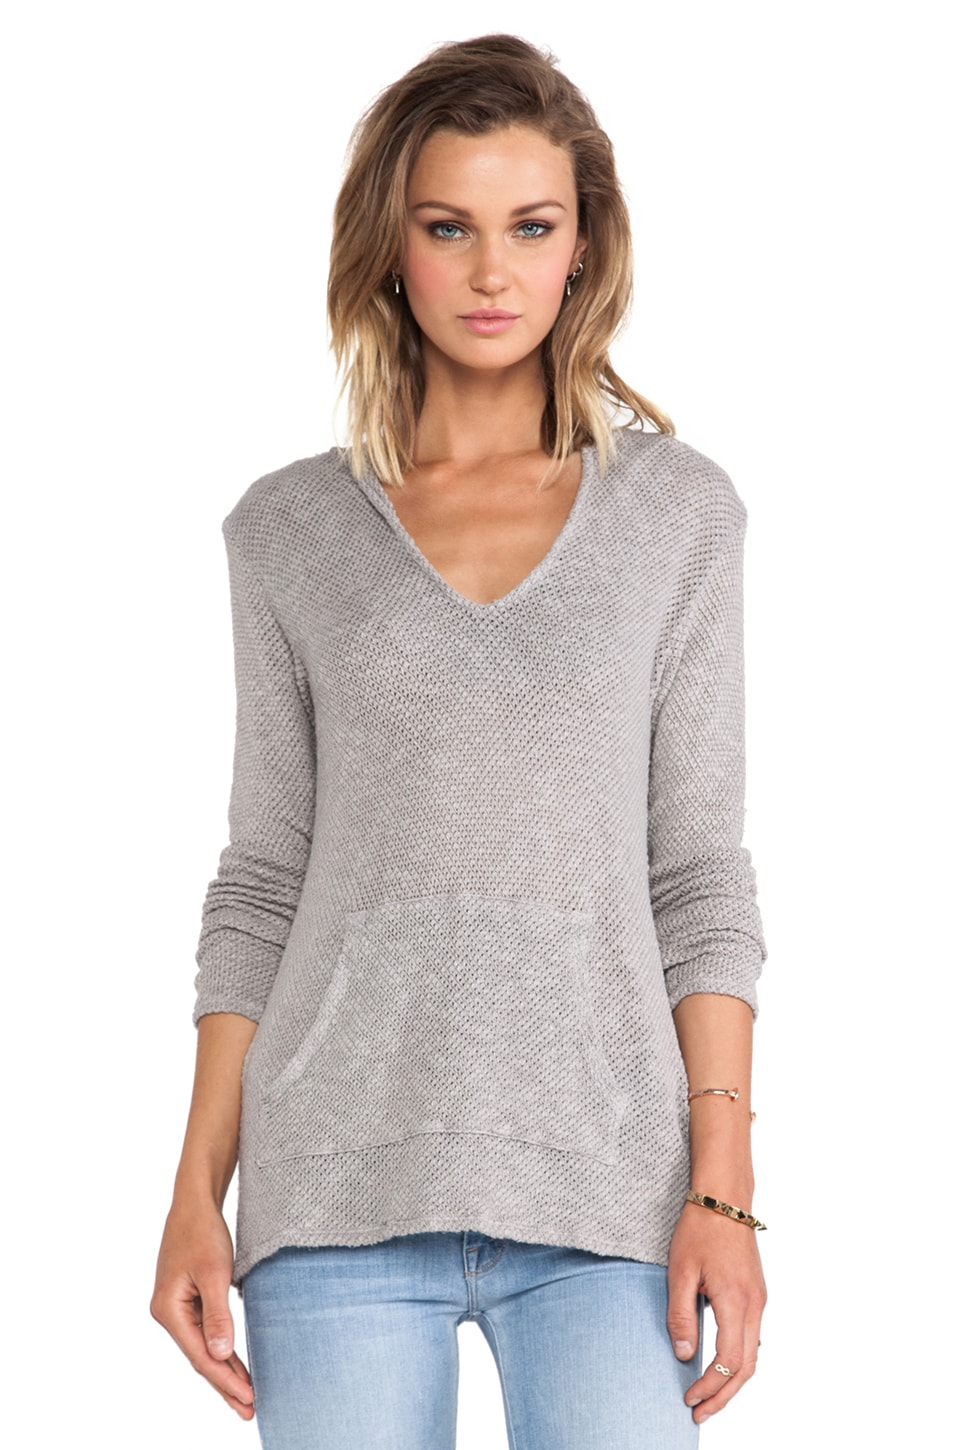 Velvet by Graham & Spencer Risanna Cotton Crochet Hooded Sweater in Moonhaze